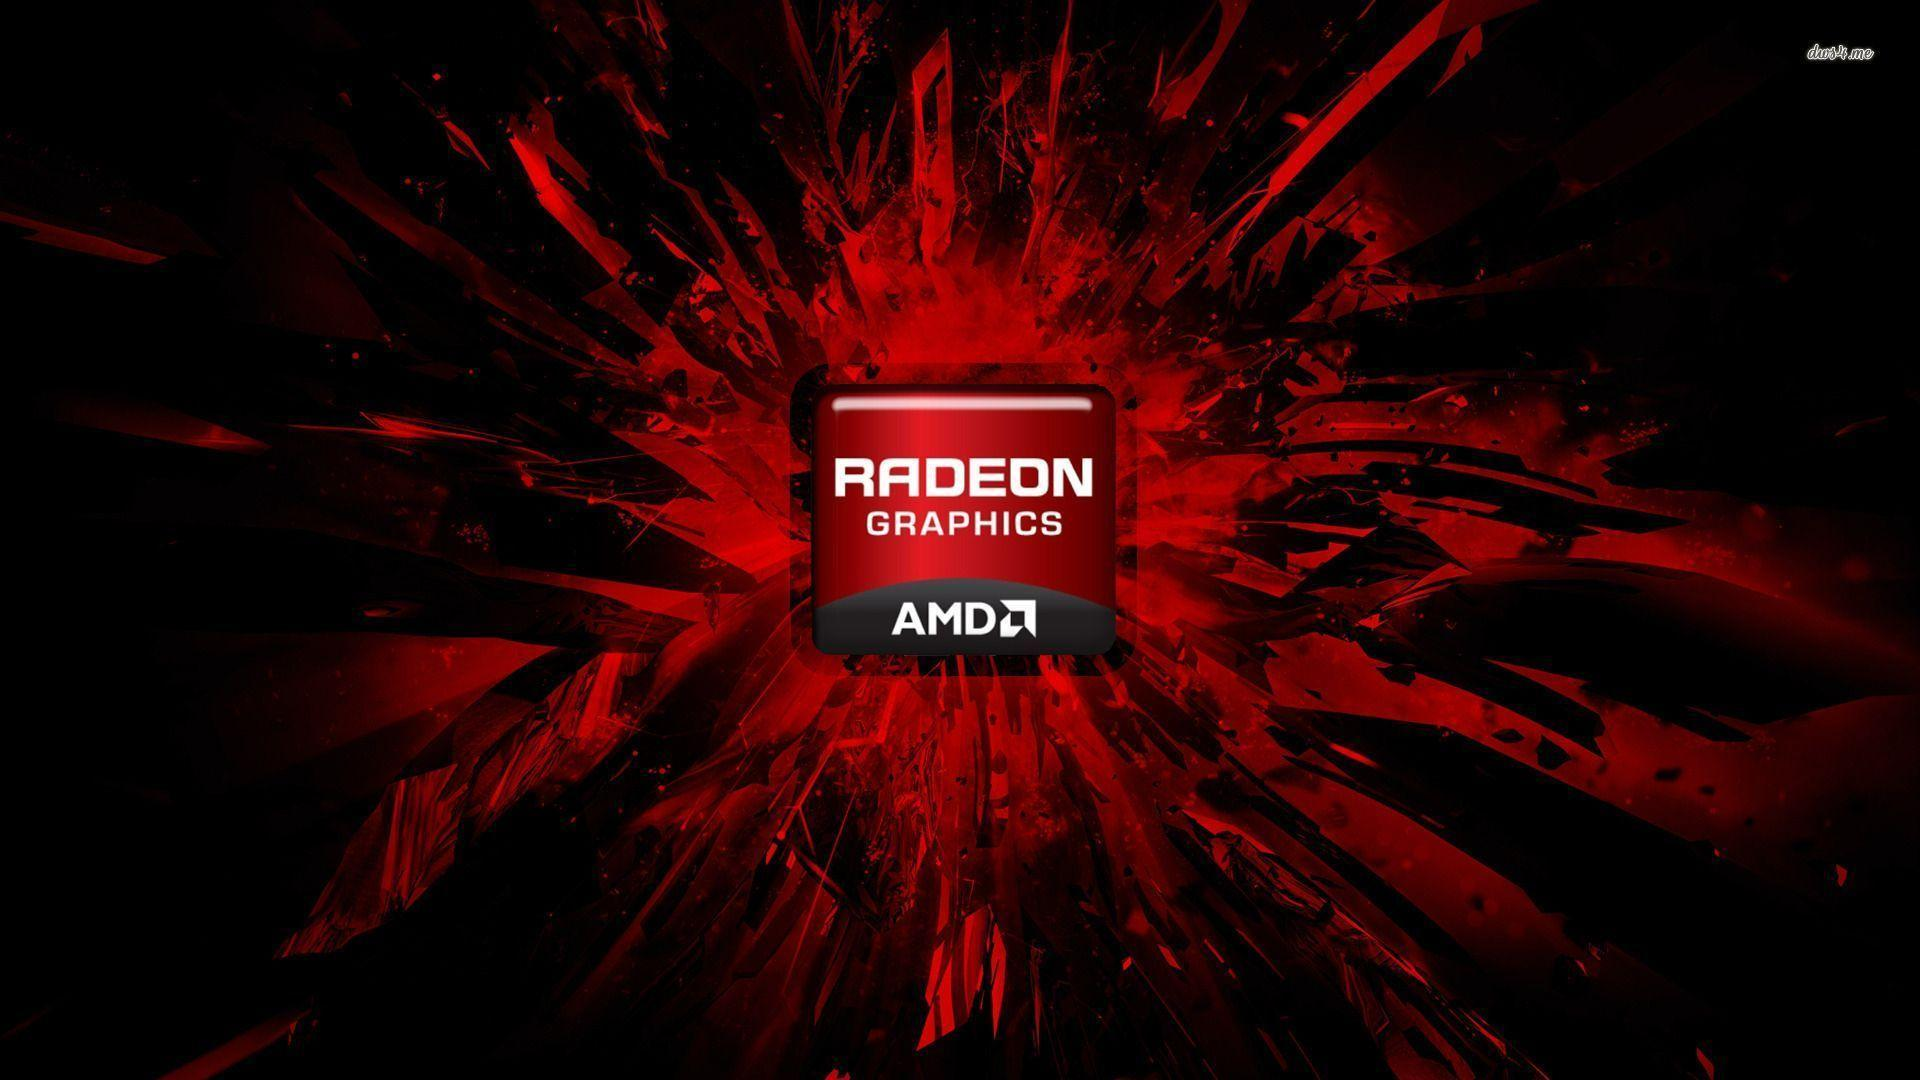 amd radeon wallpapers hd -#main